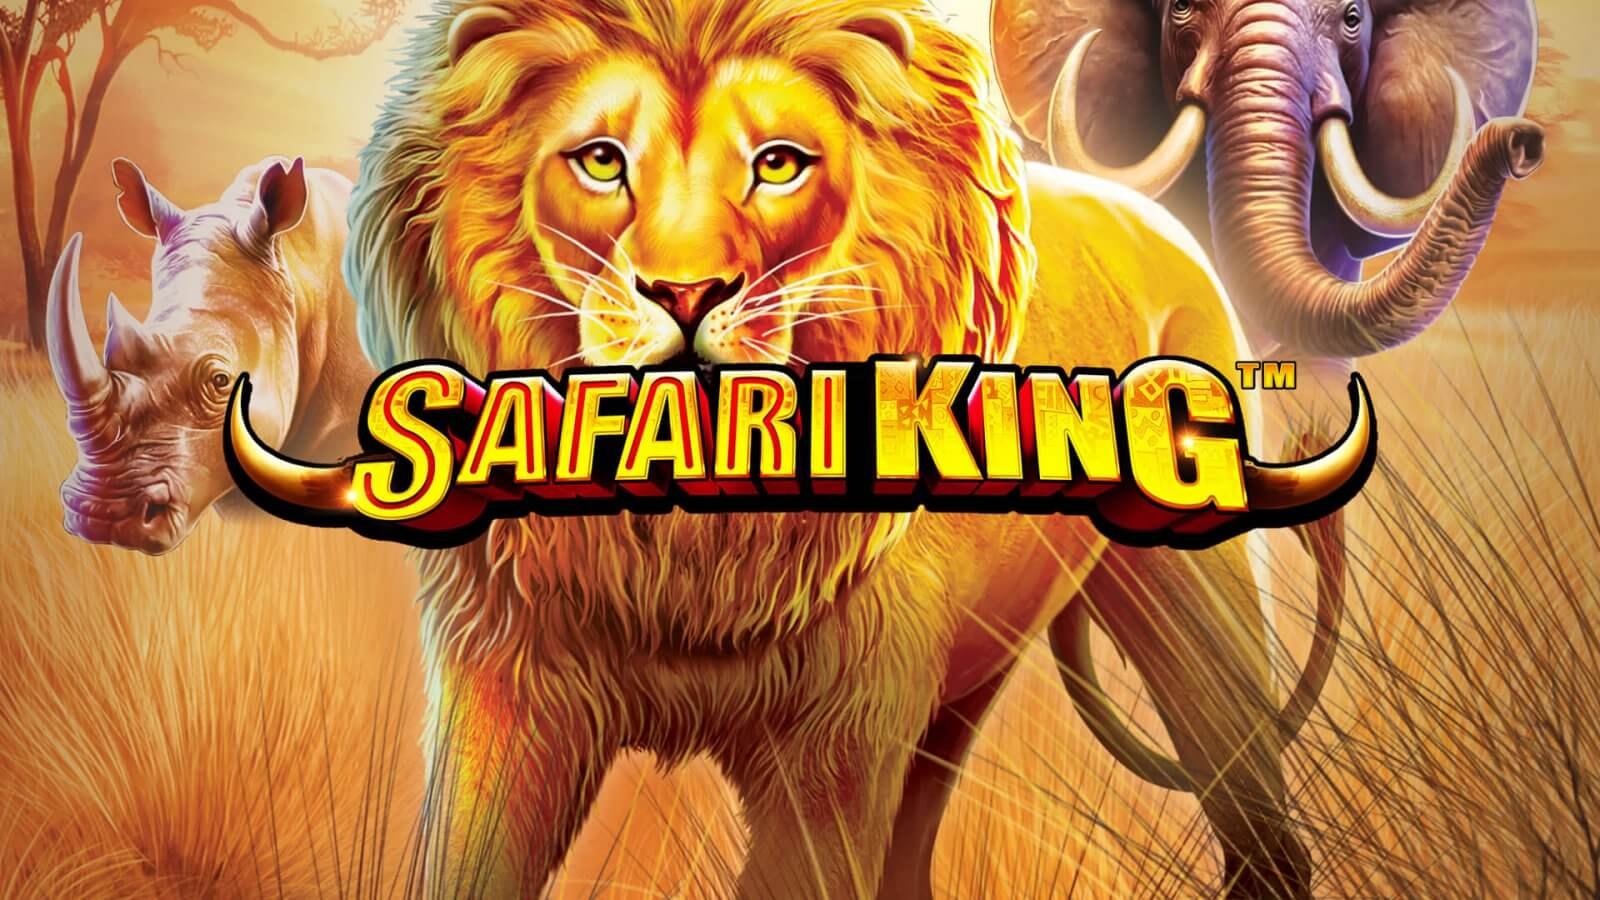 Safari King from Pragmatic Play Online Slot Review